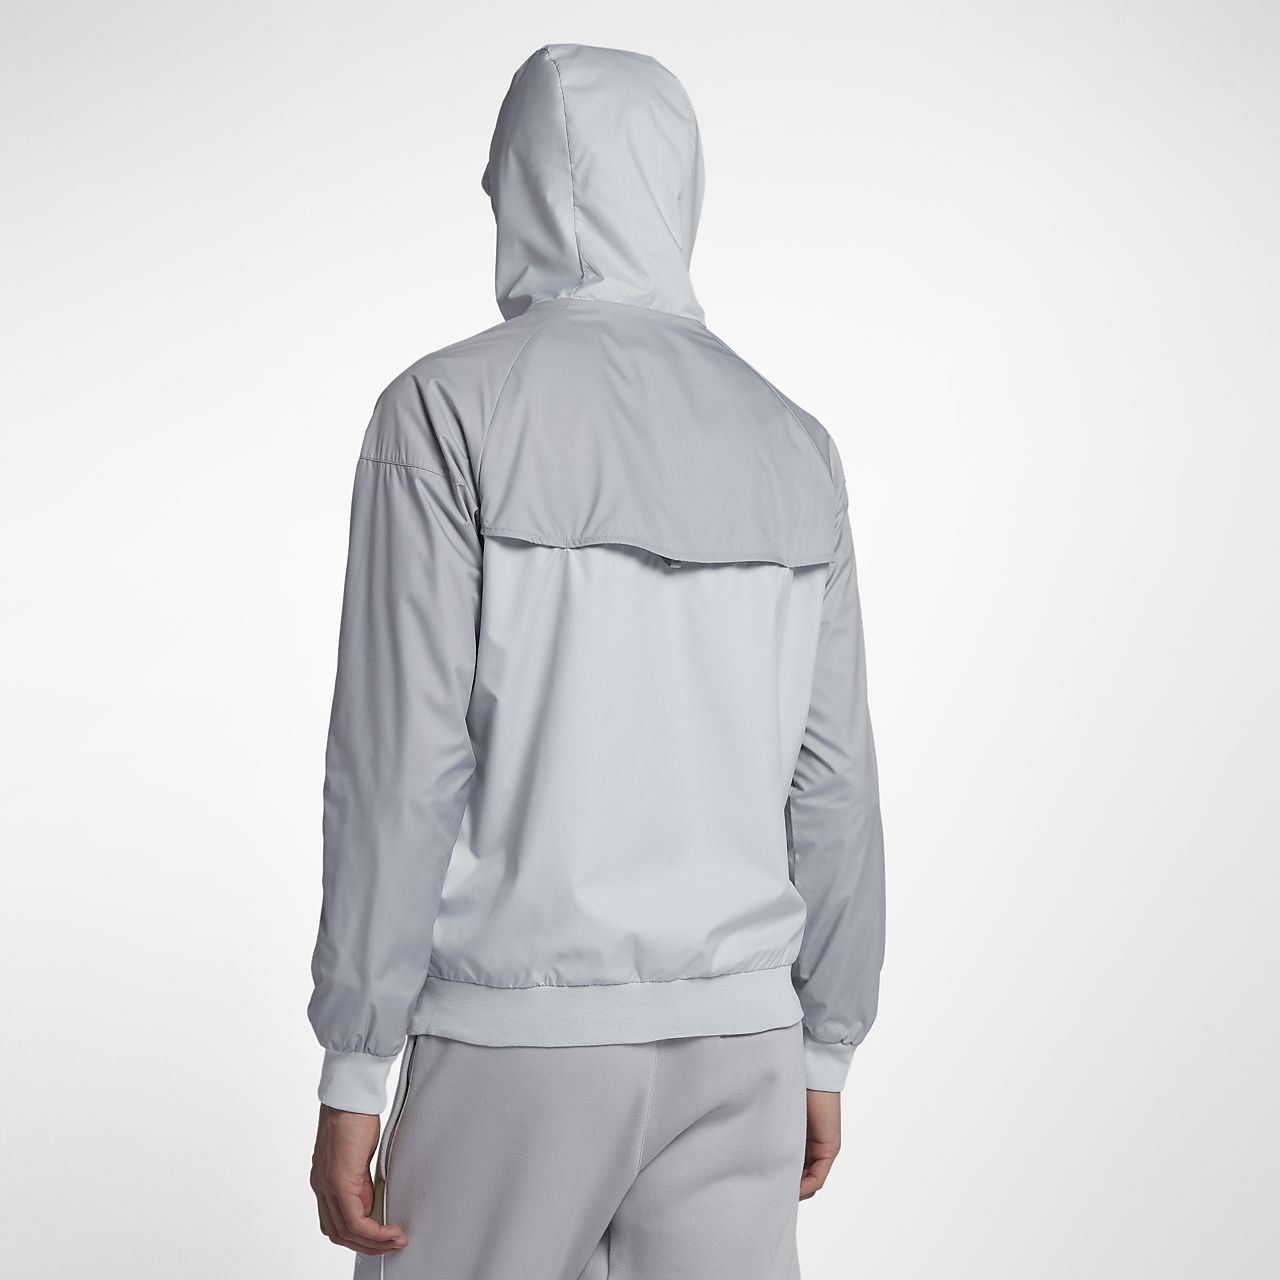 Nike Zip Up Hoodie Sweatpants Set Brand new with tags